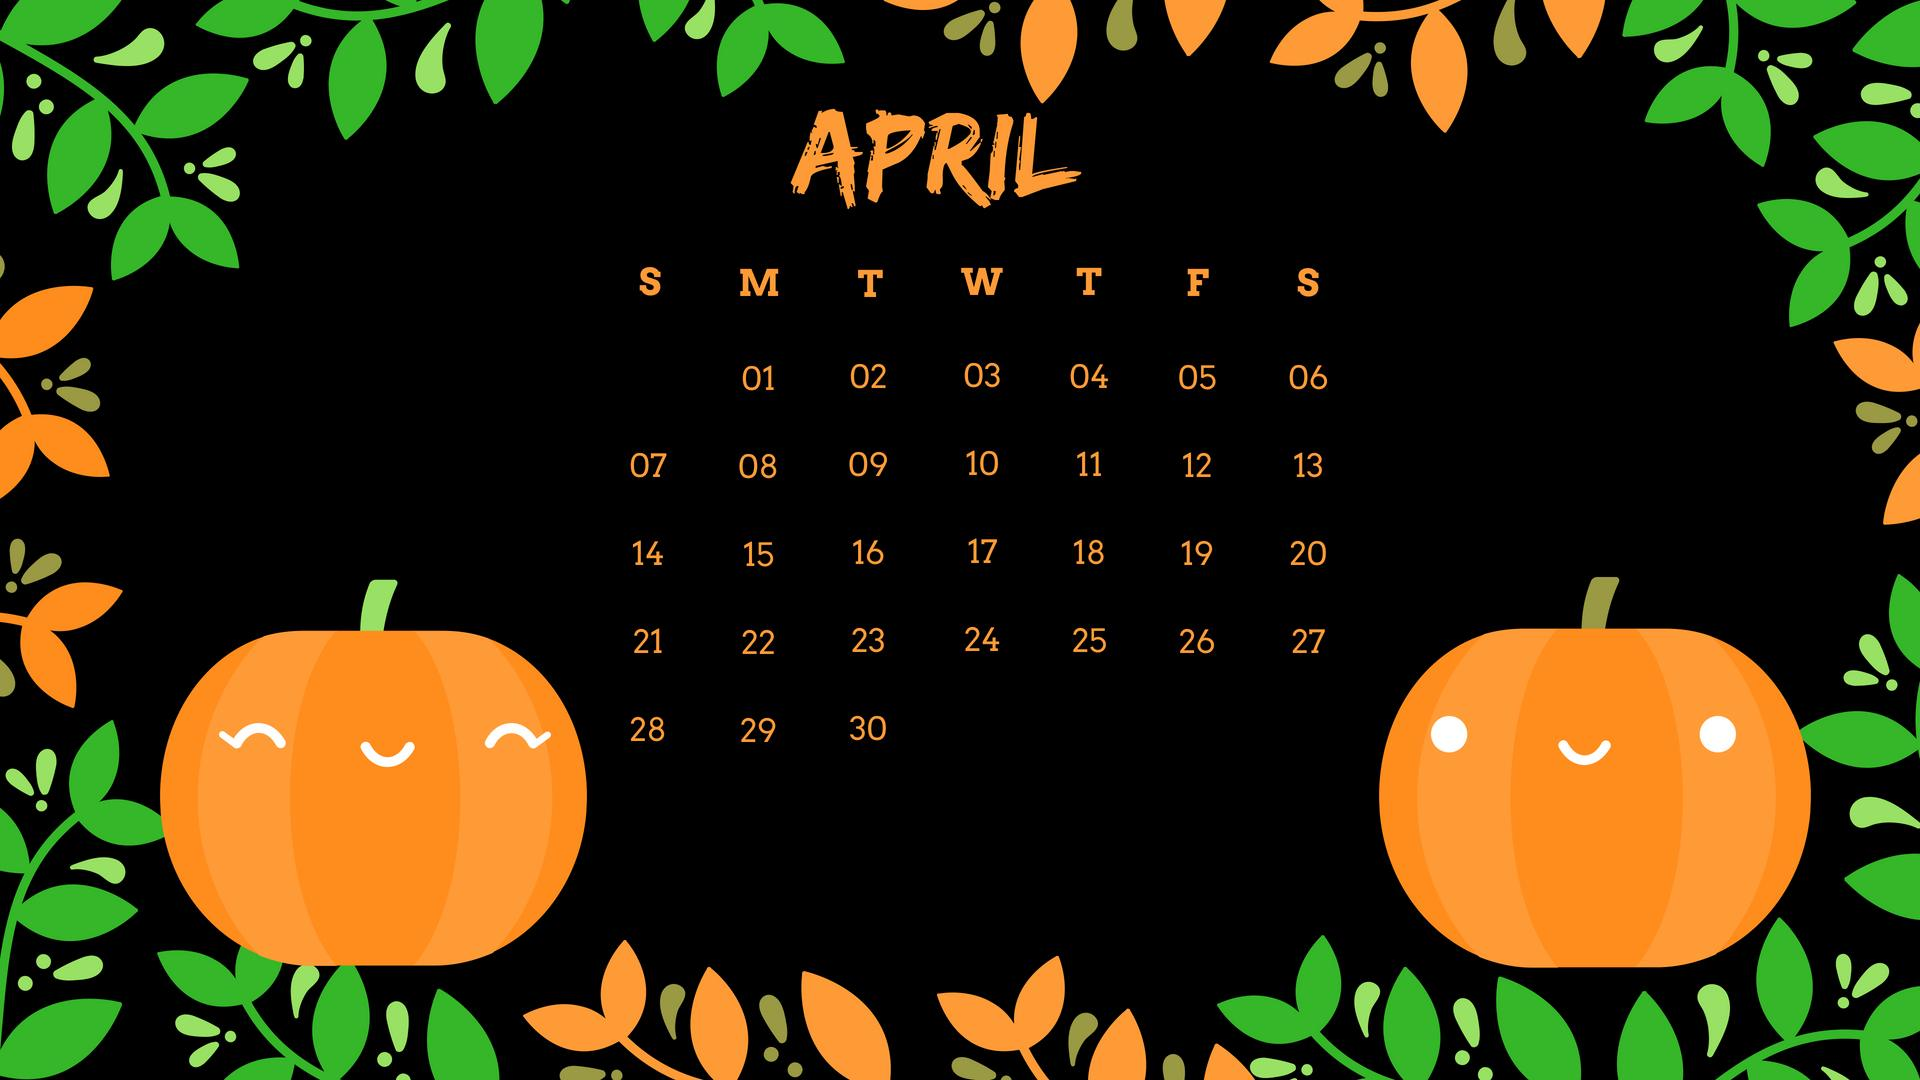 April 2019 Calendar Wallpapers